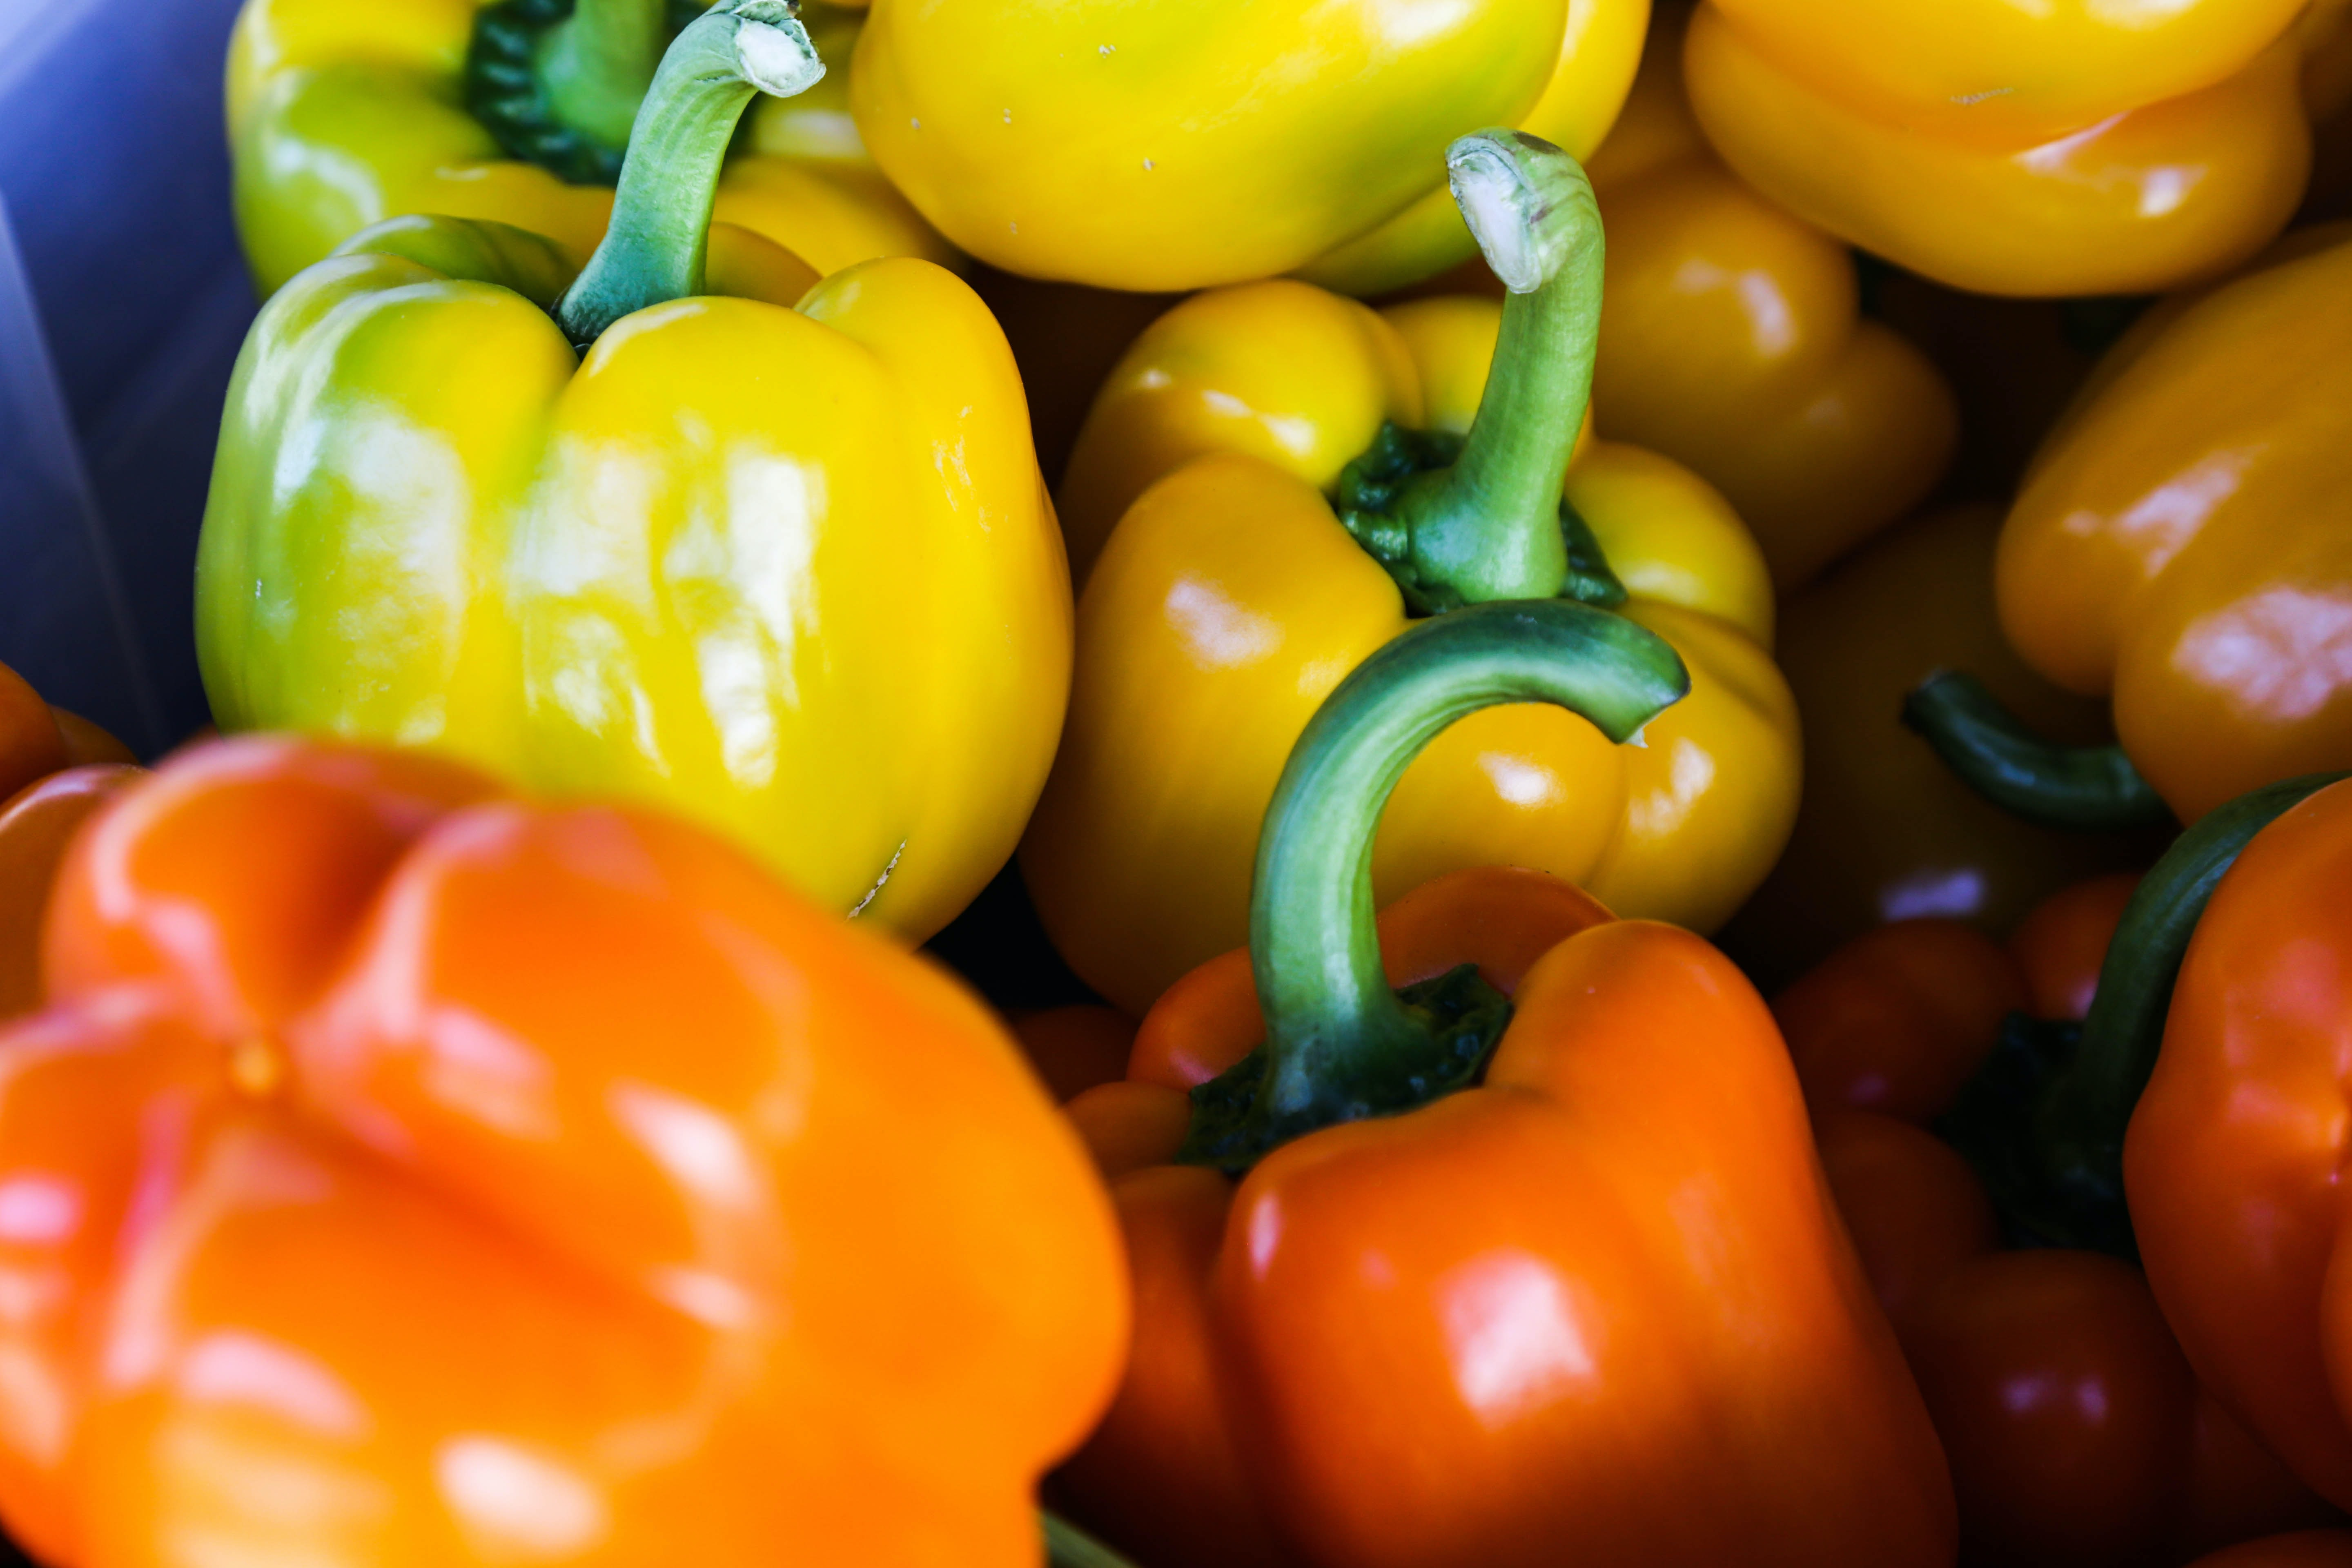 Close-up of yellow and orange bell peppers